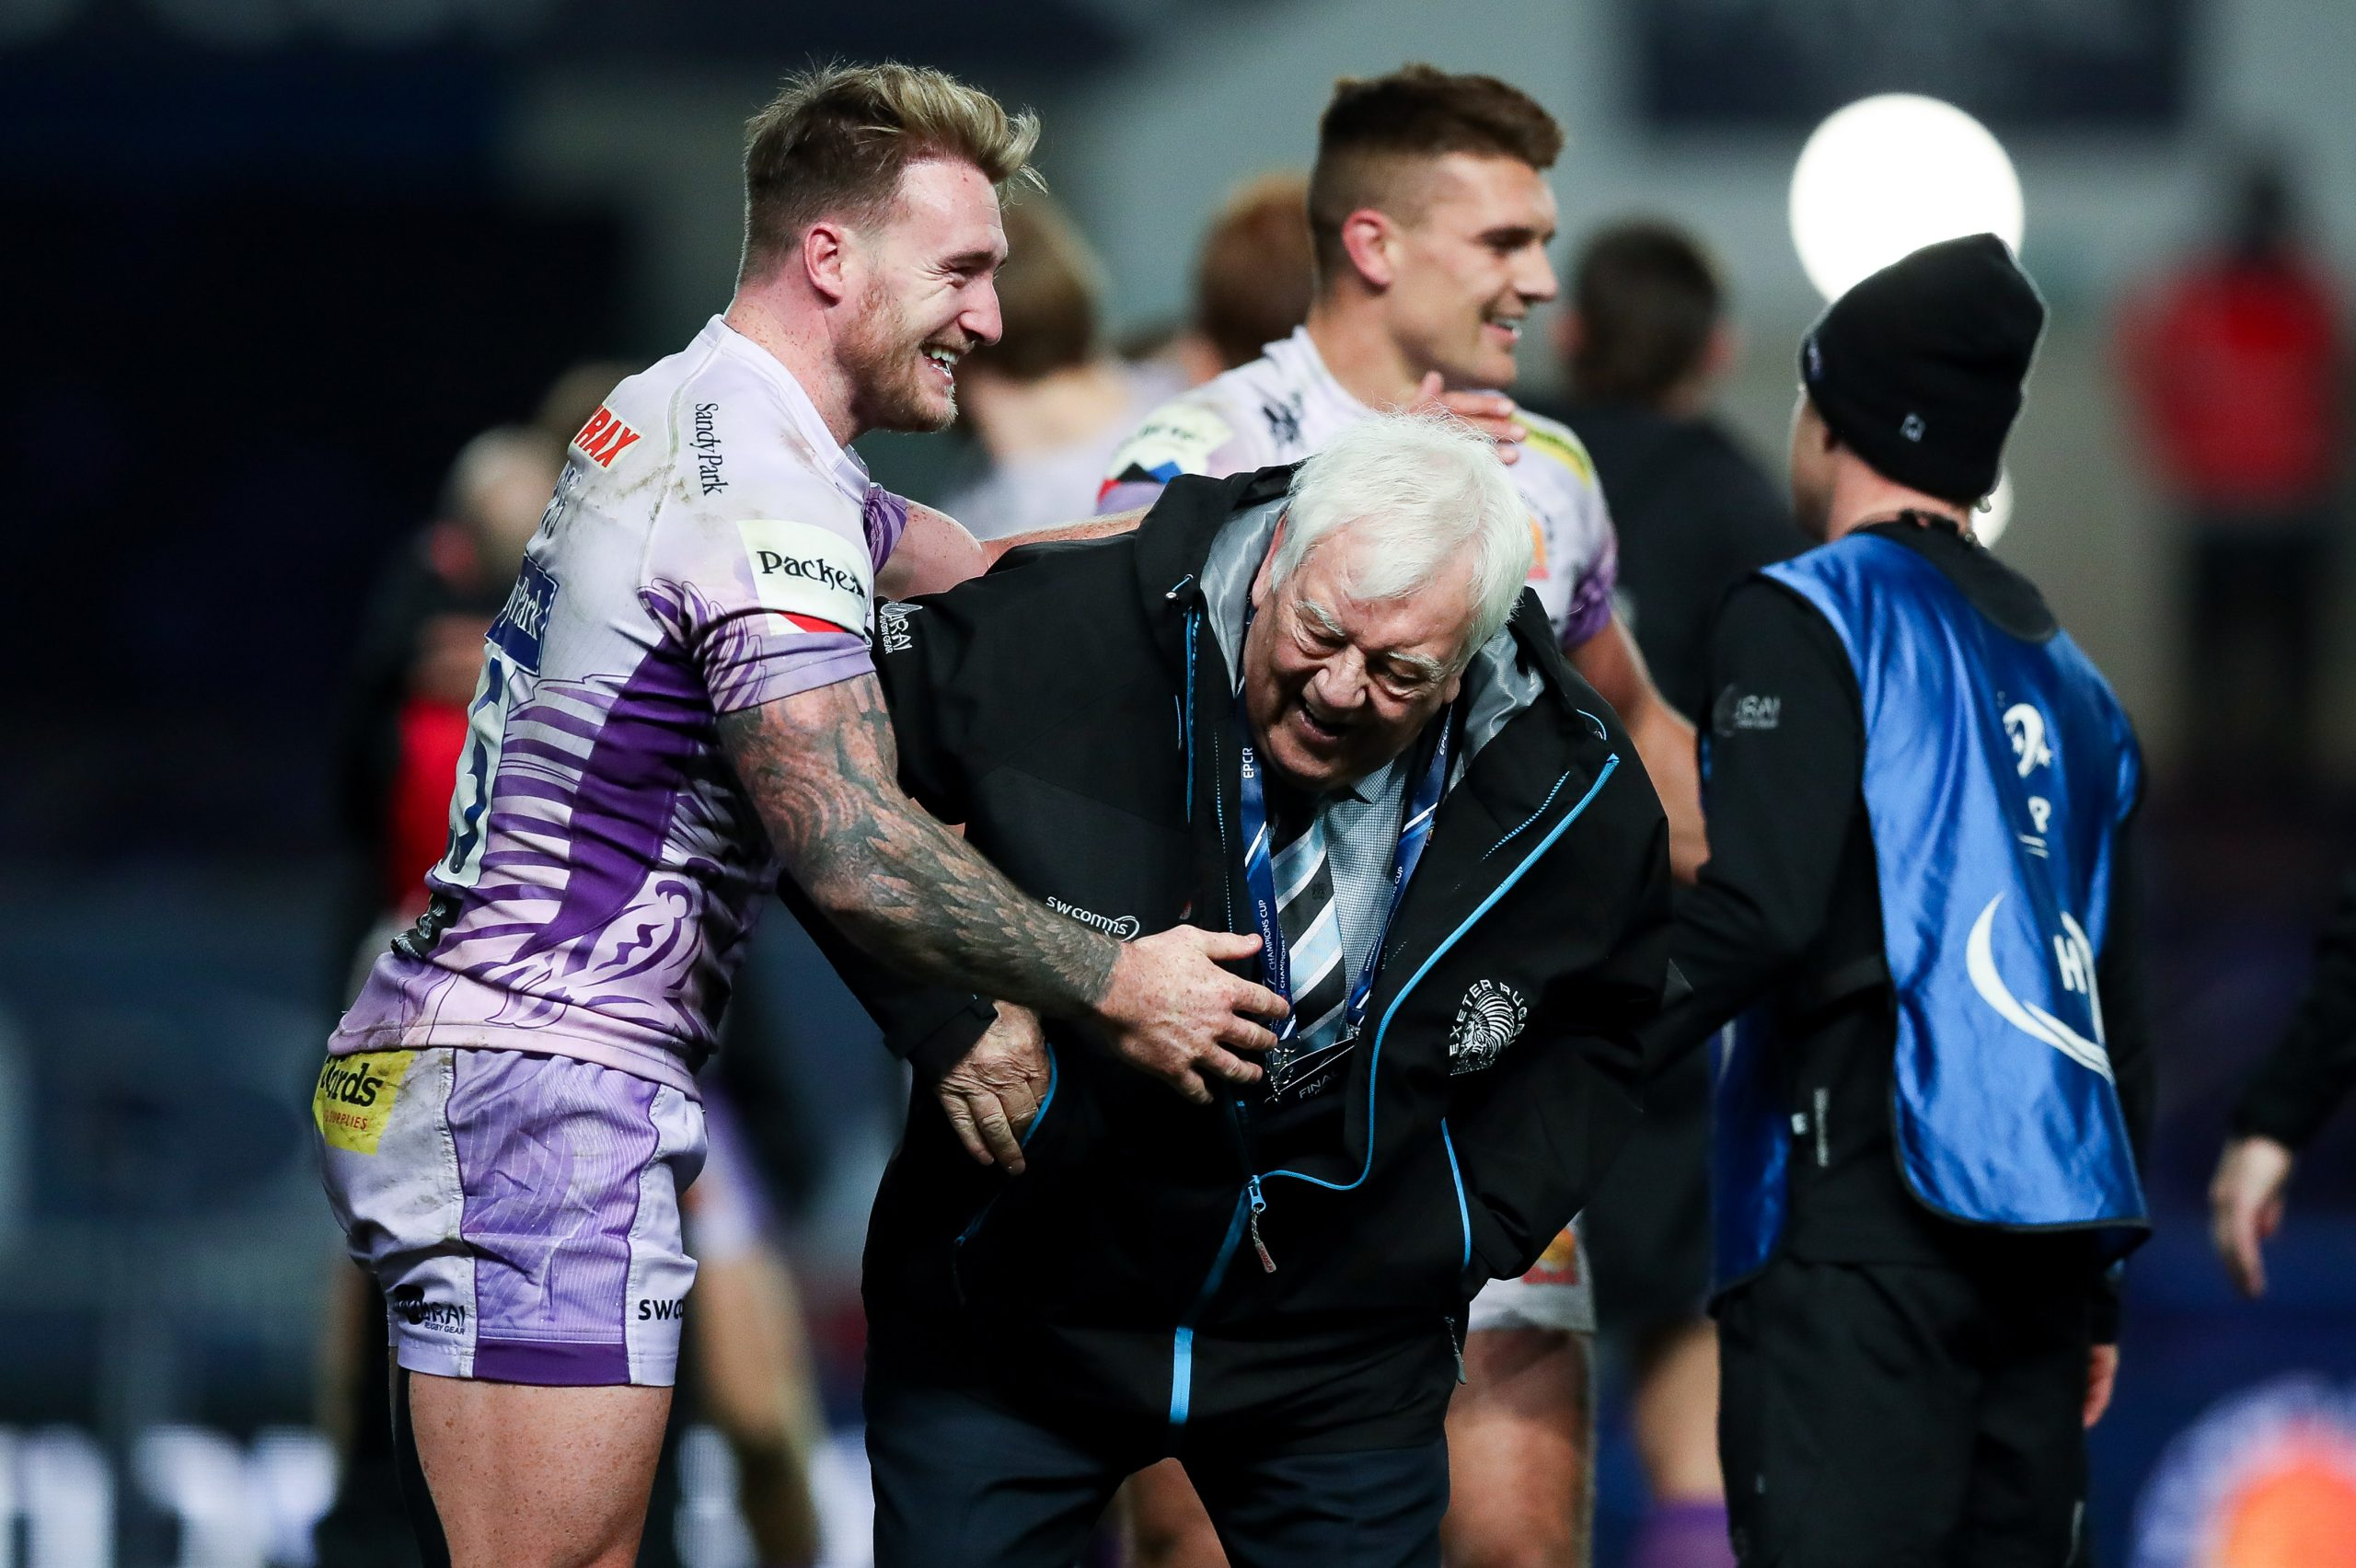 Stuart Hogg and Tony Rowe, chief executive and chairman of Exeter Rugby Club, celebrate. Picture: ©INPHO/Rogan Thomson